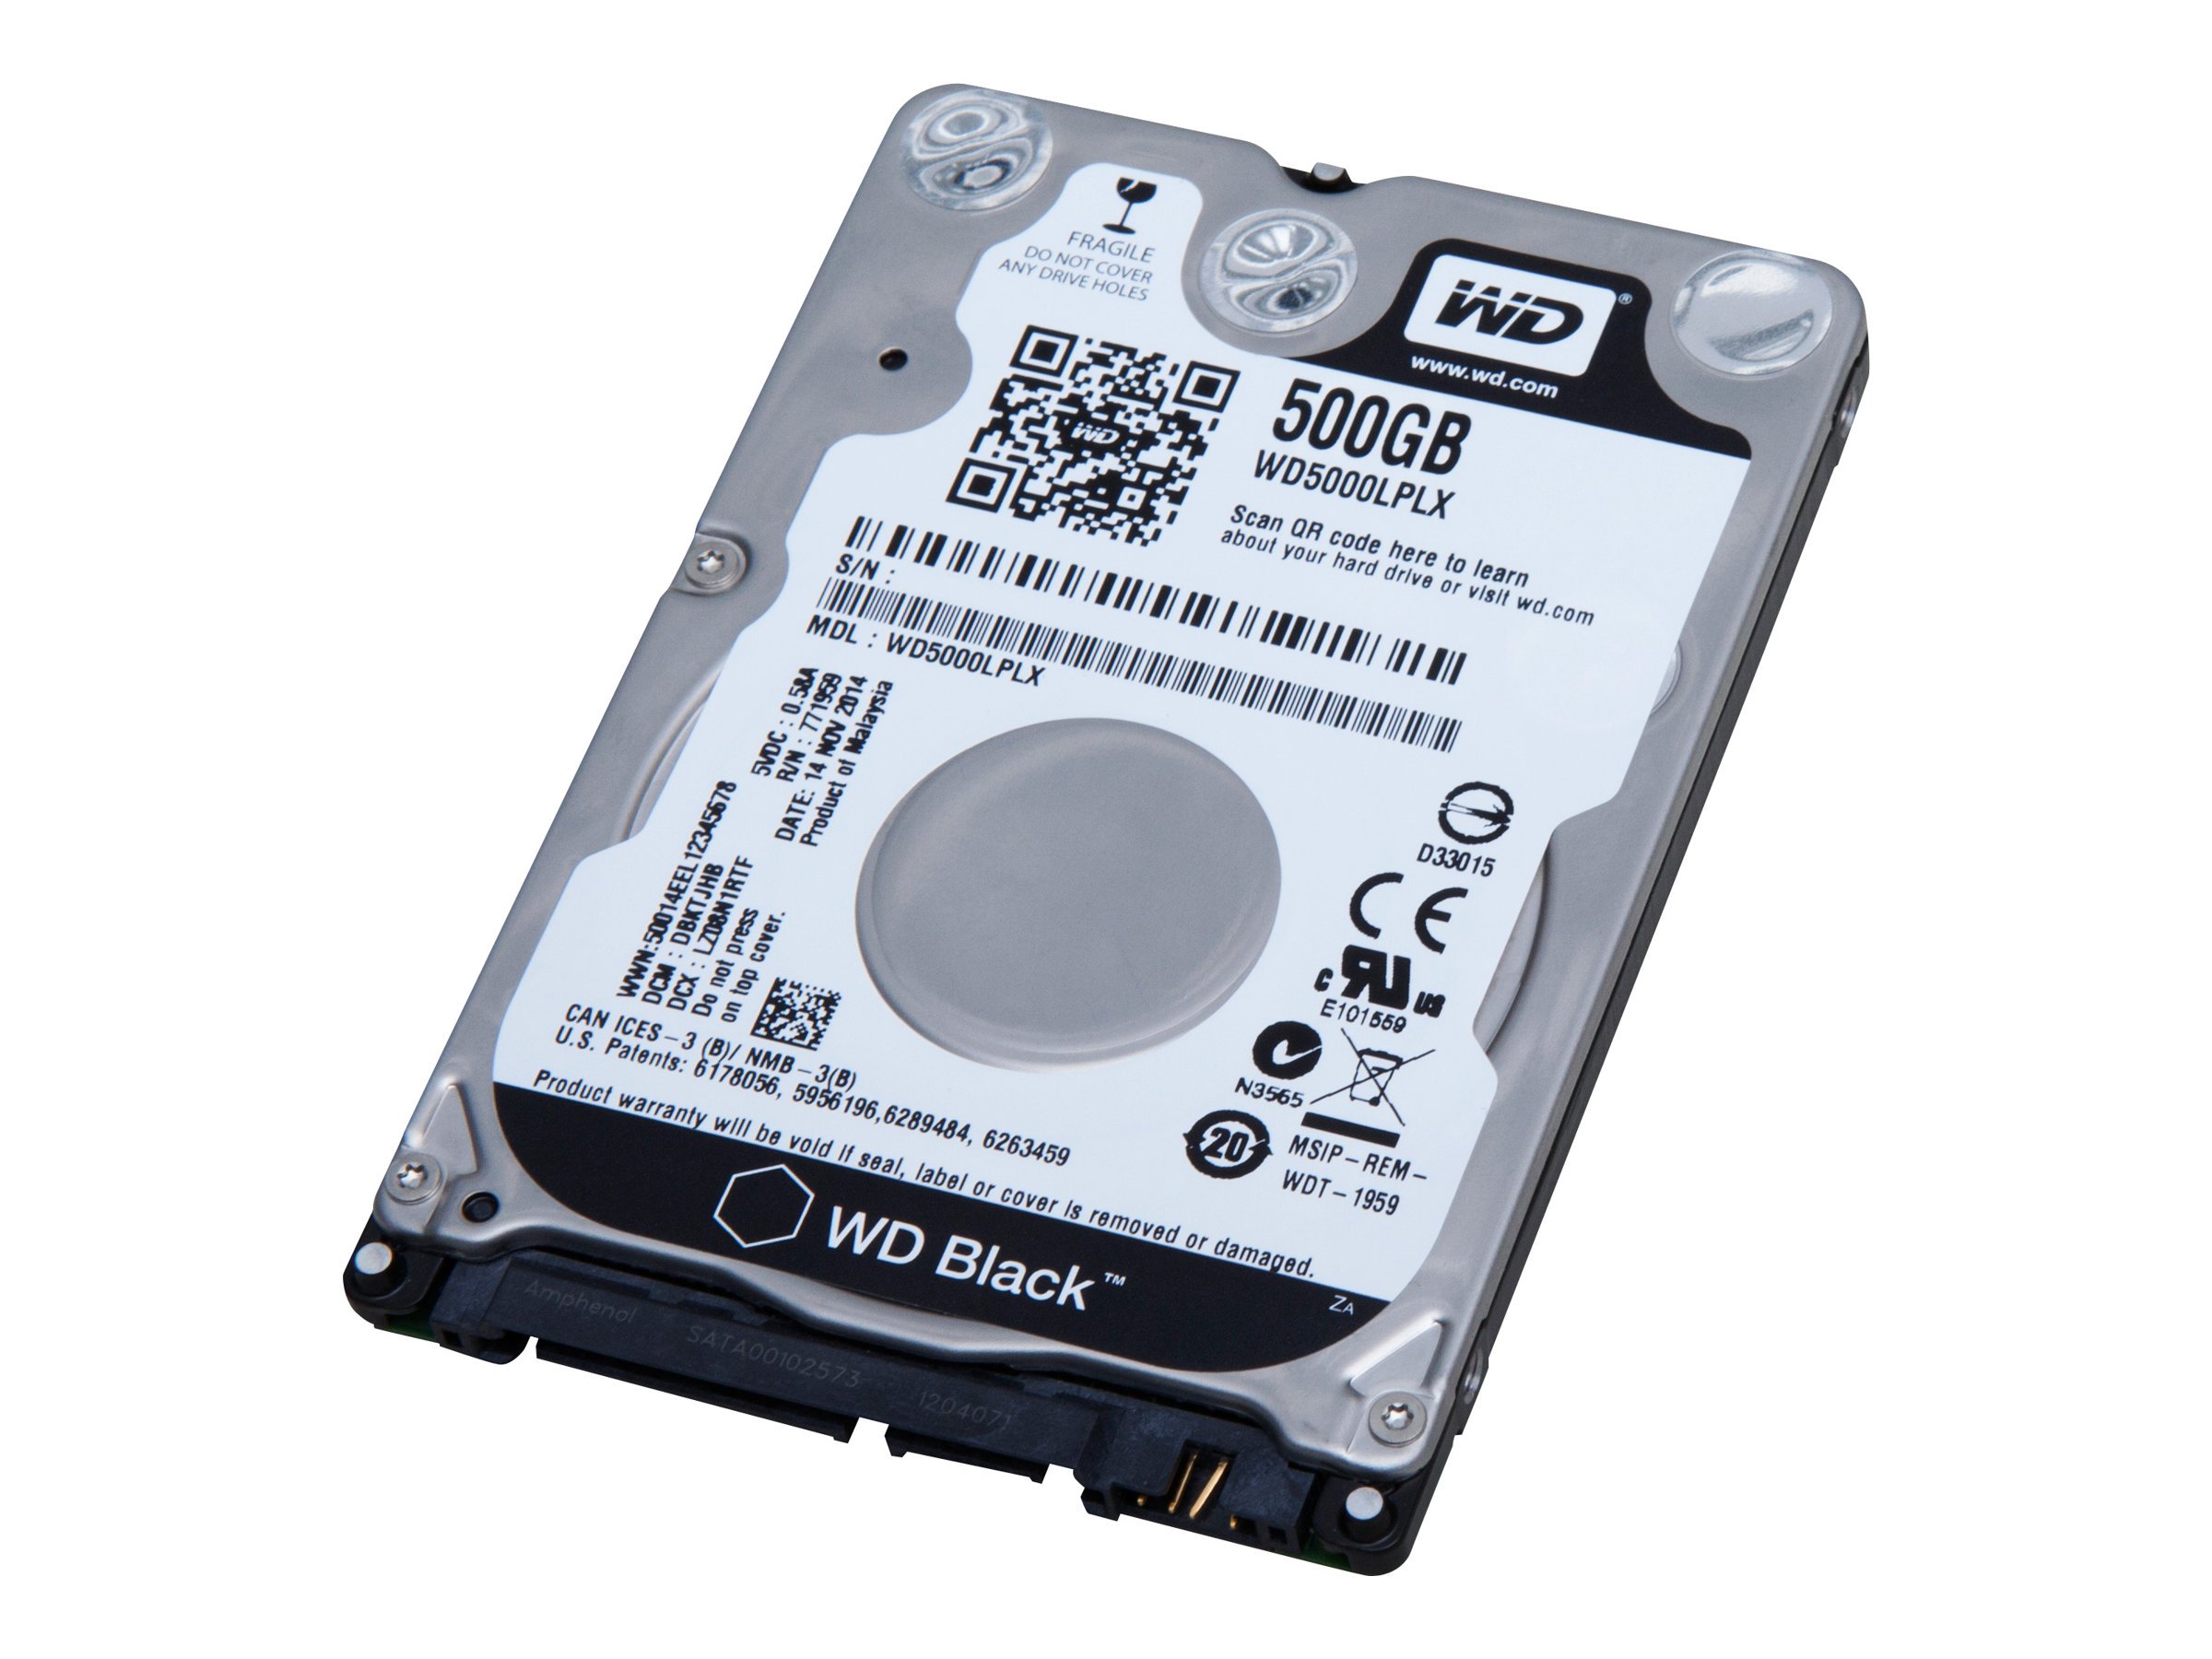 WD Black Performance Hard Drive WD5000LPLX